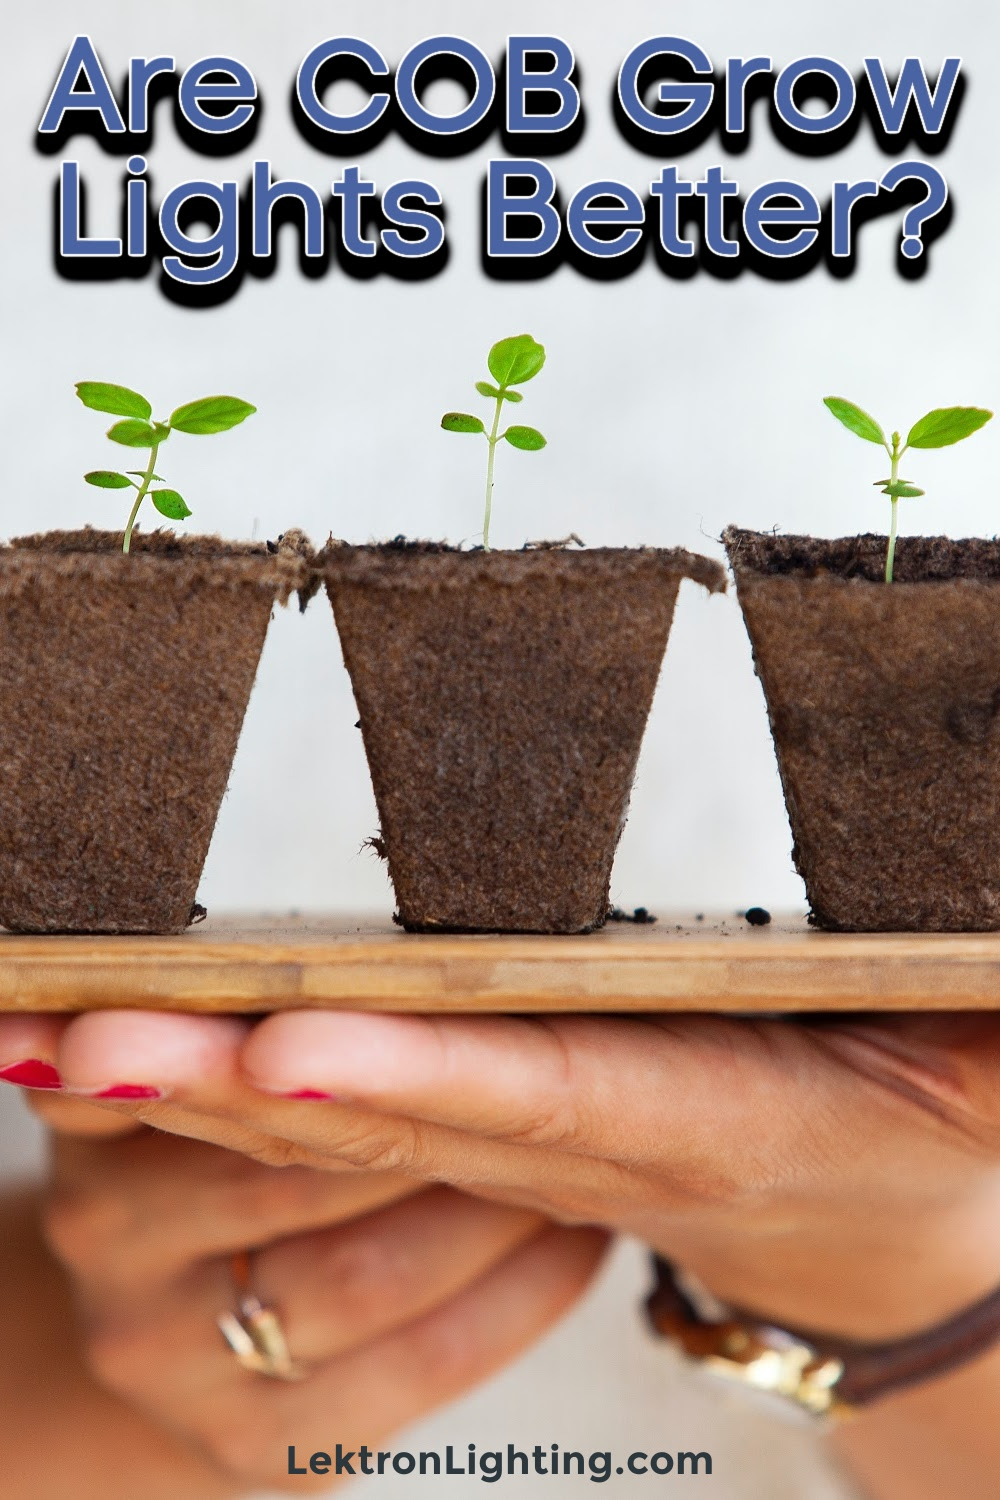 You may be asking if COB grow lights are better for growing plants and the answer is not as simple as yes or no.